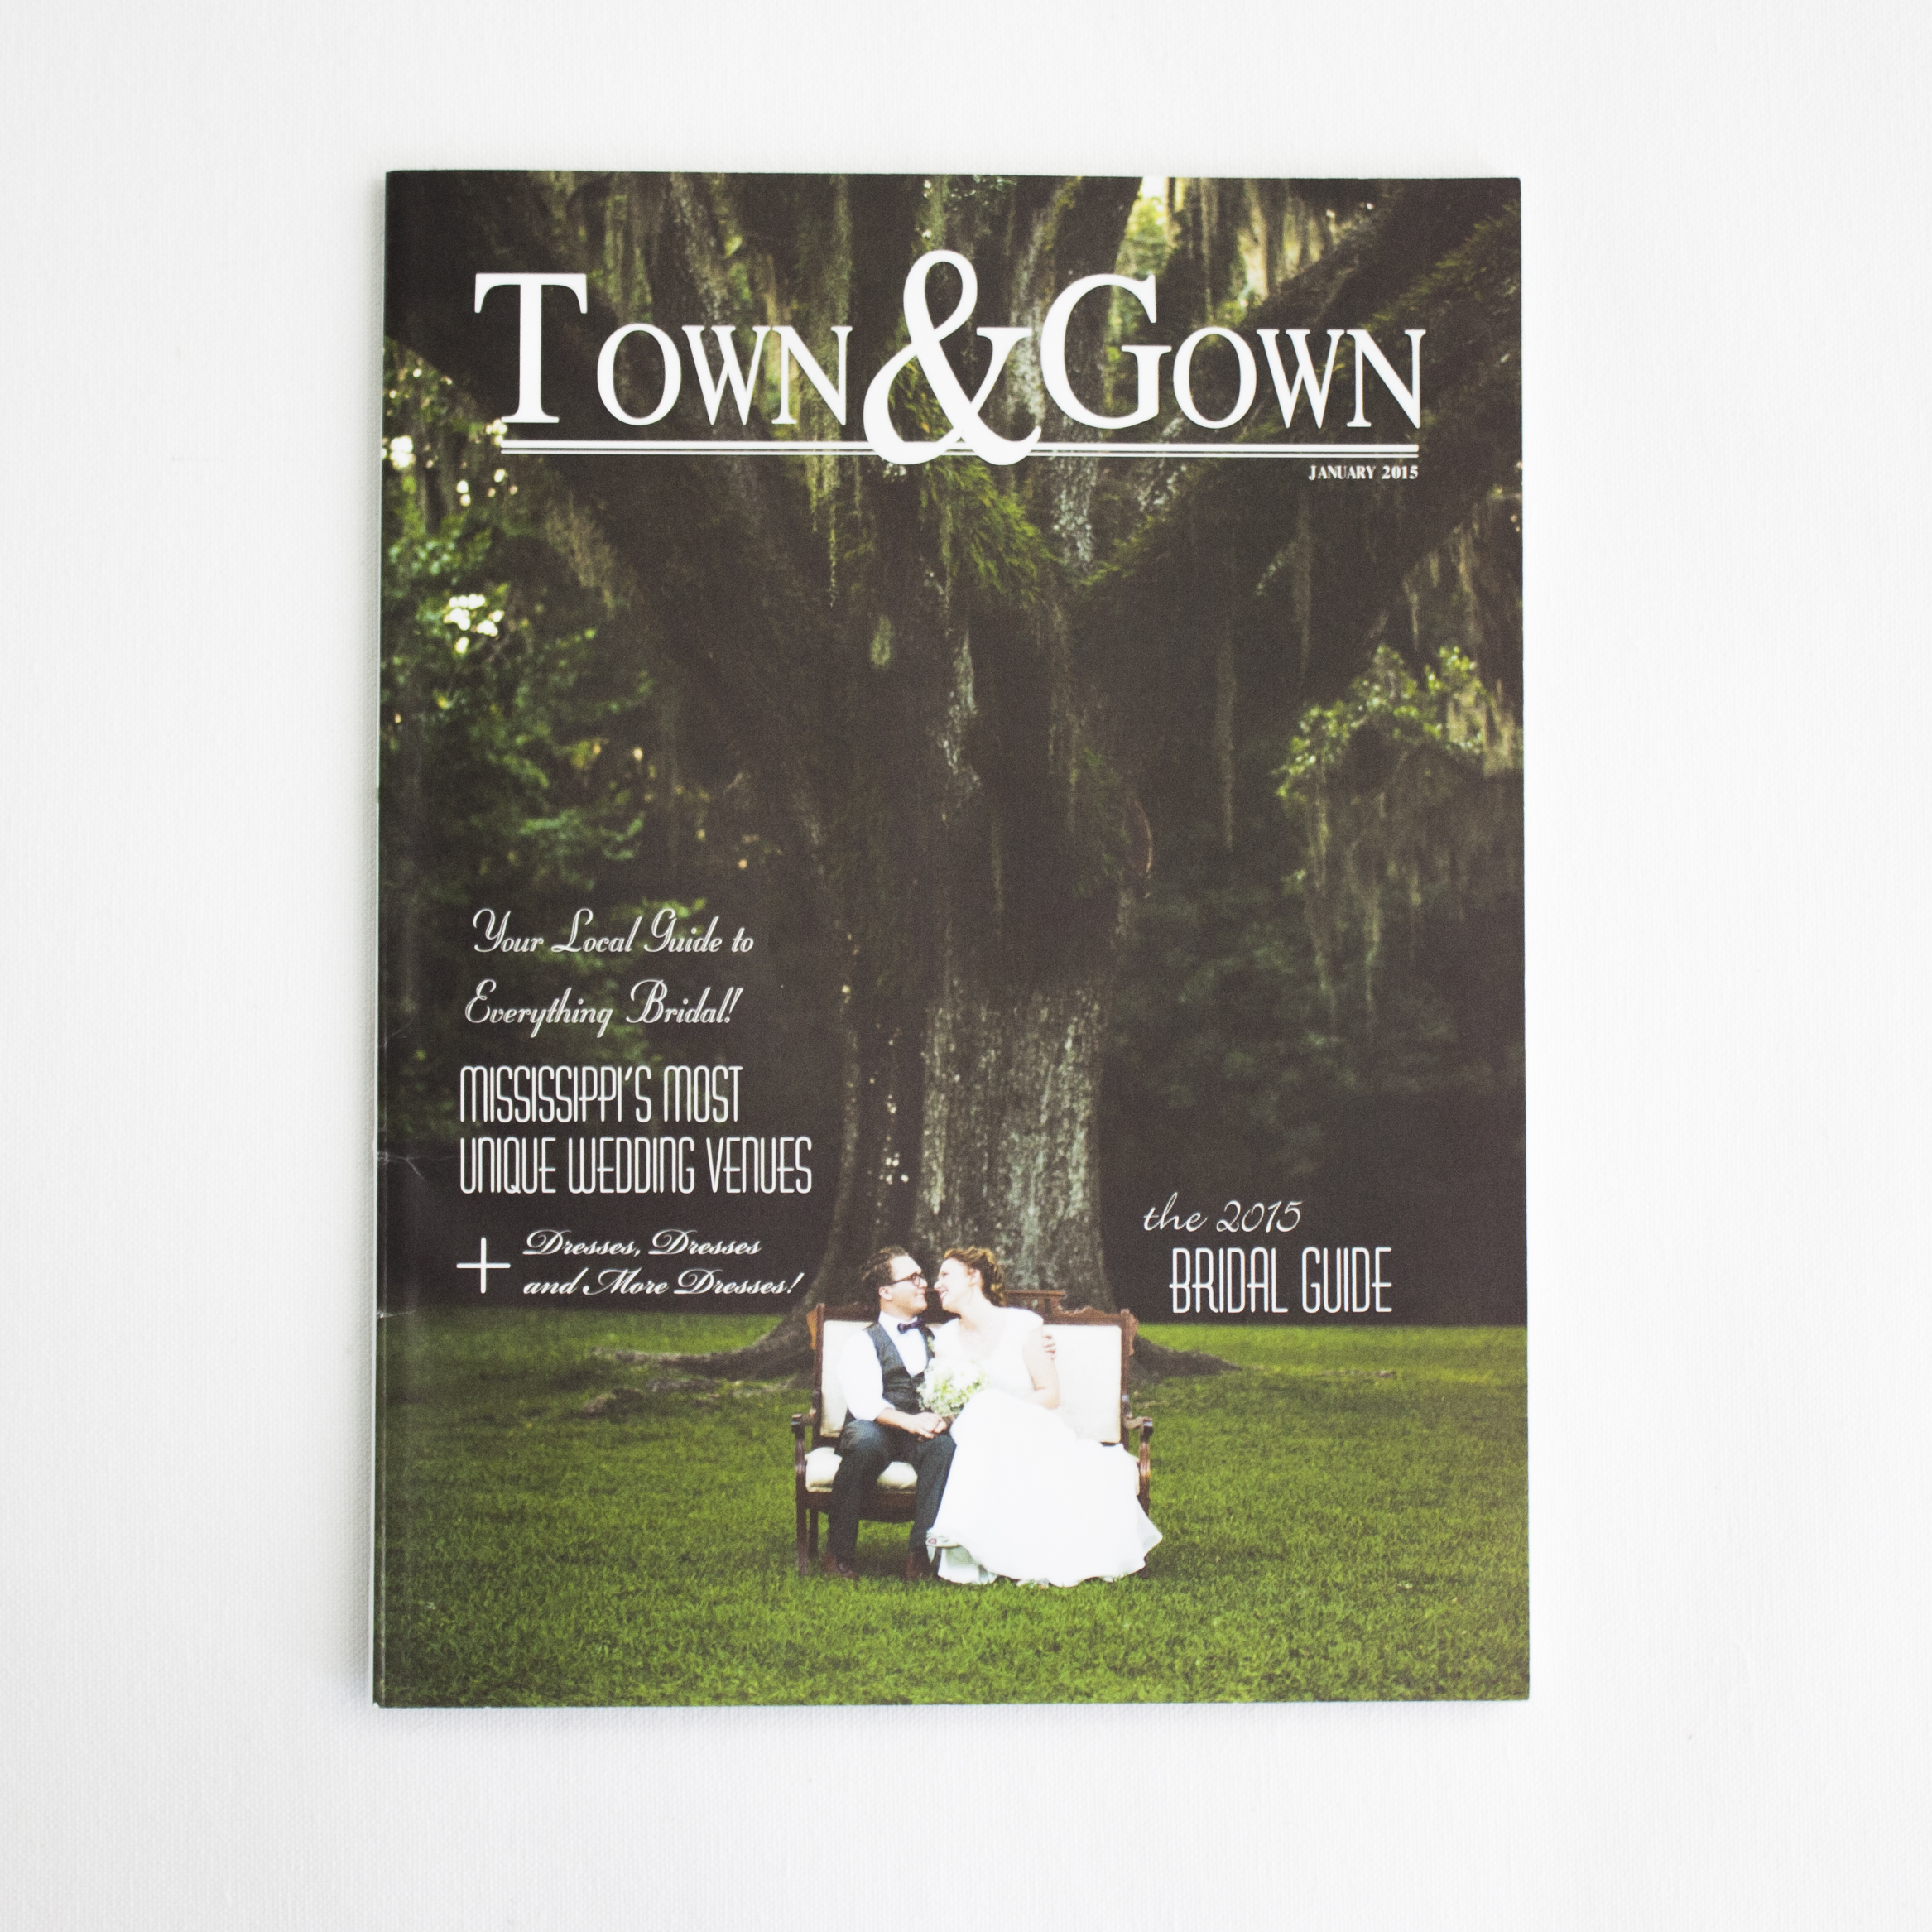 TownGown